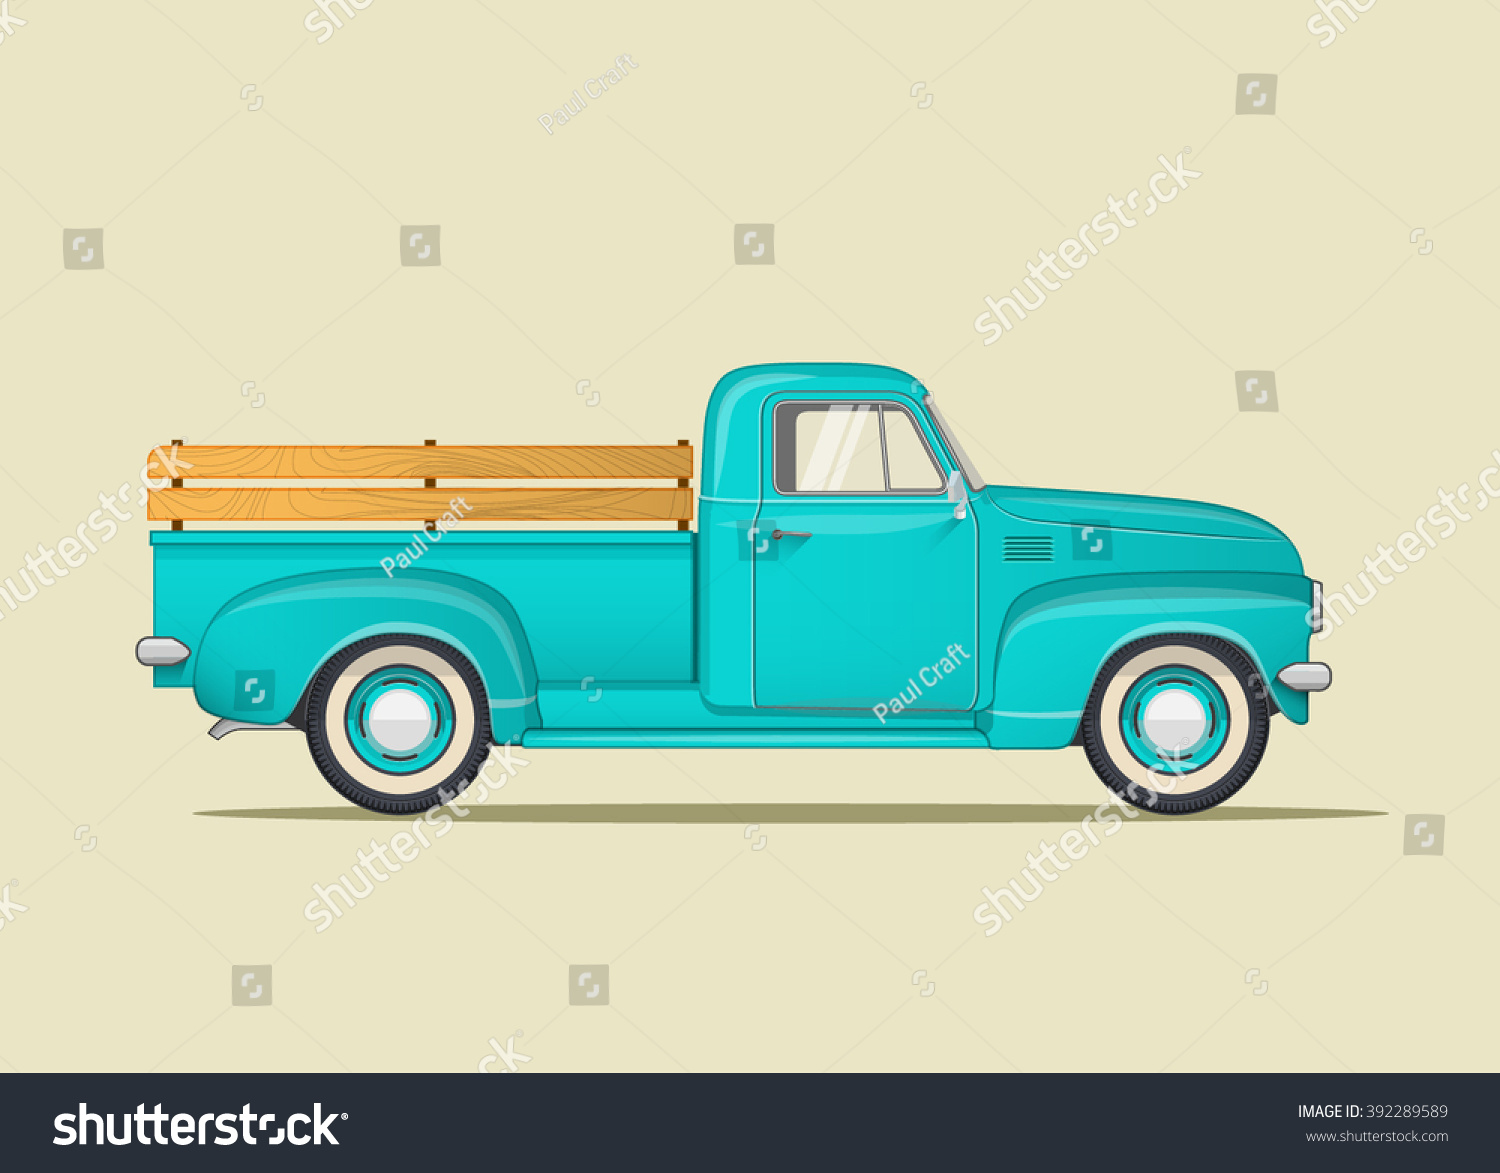 Classic Pickup Truck Flat Styled Vector Illustration